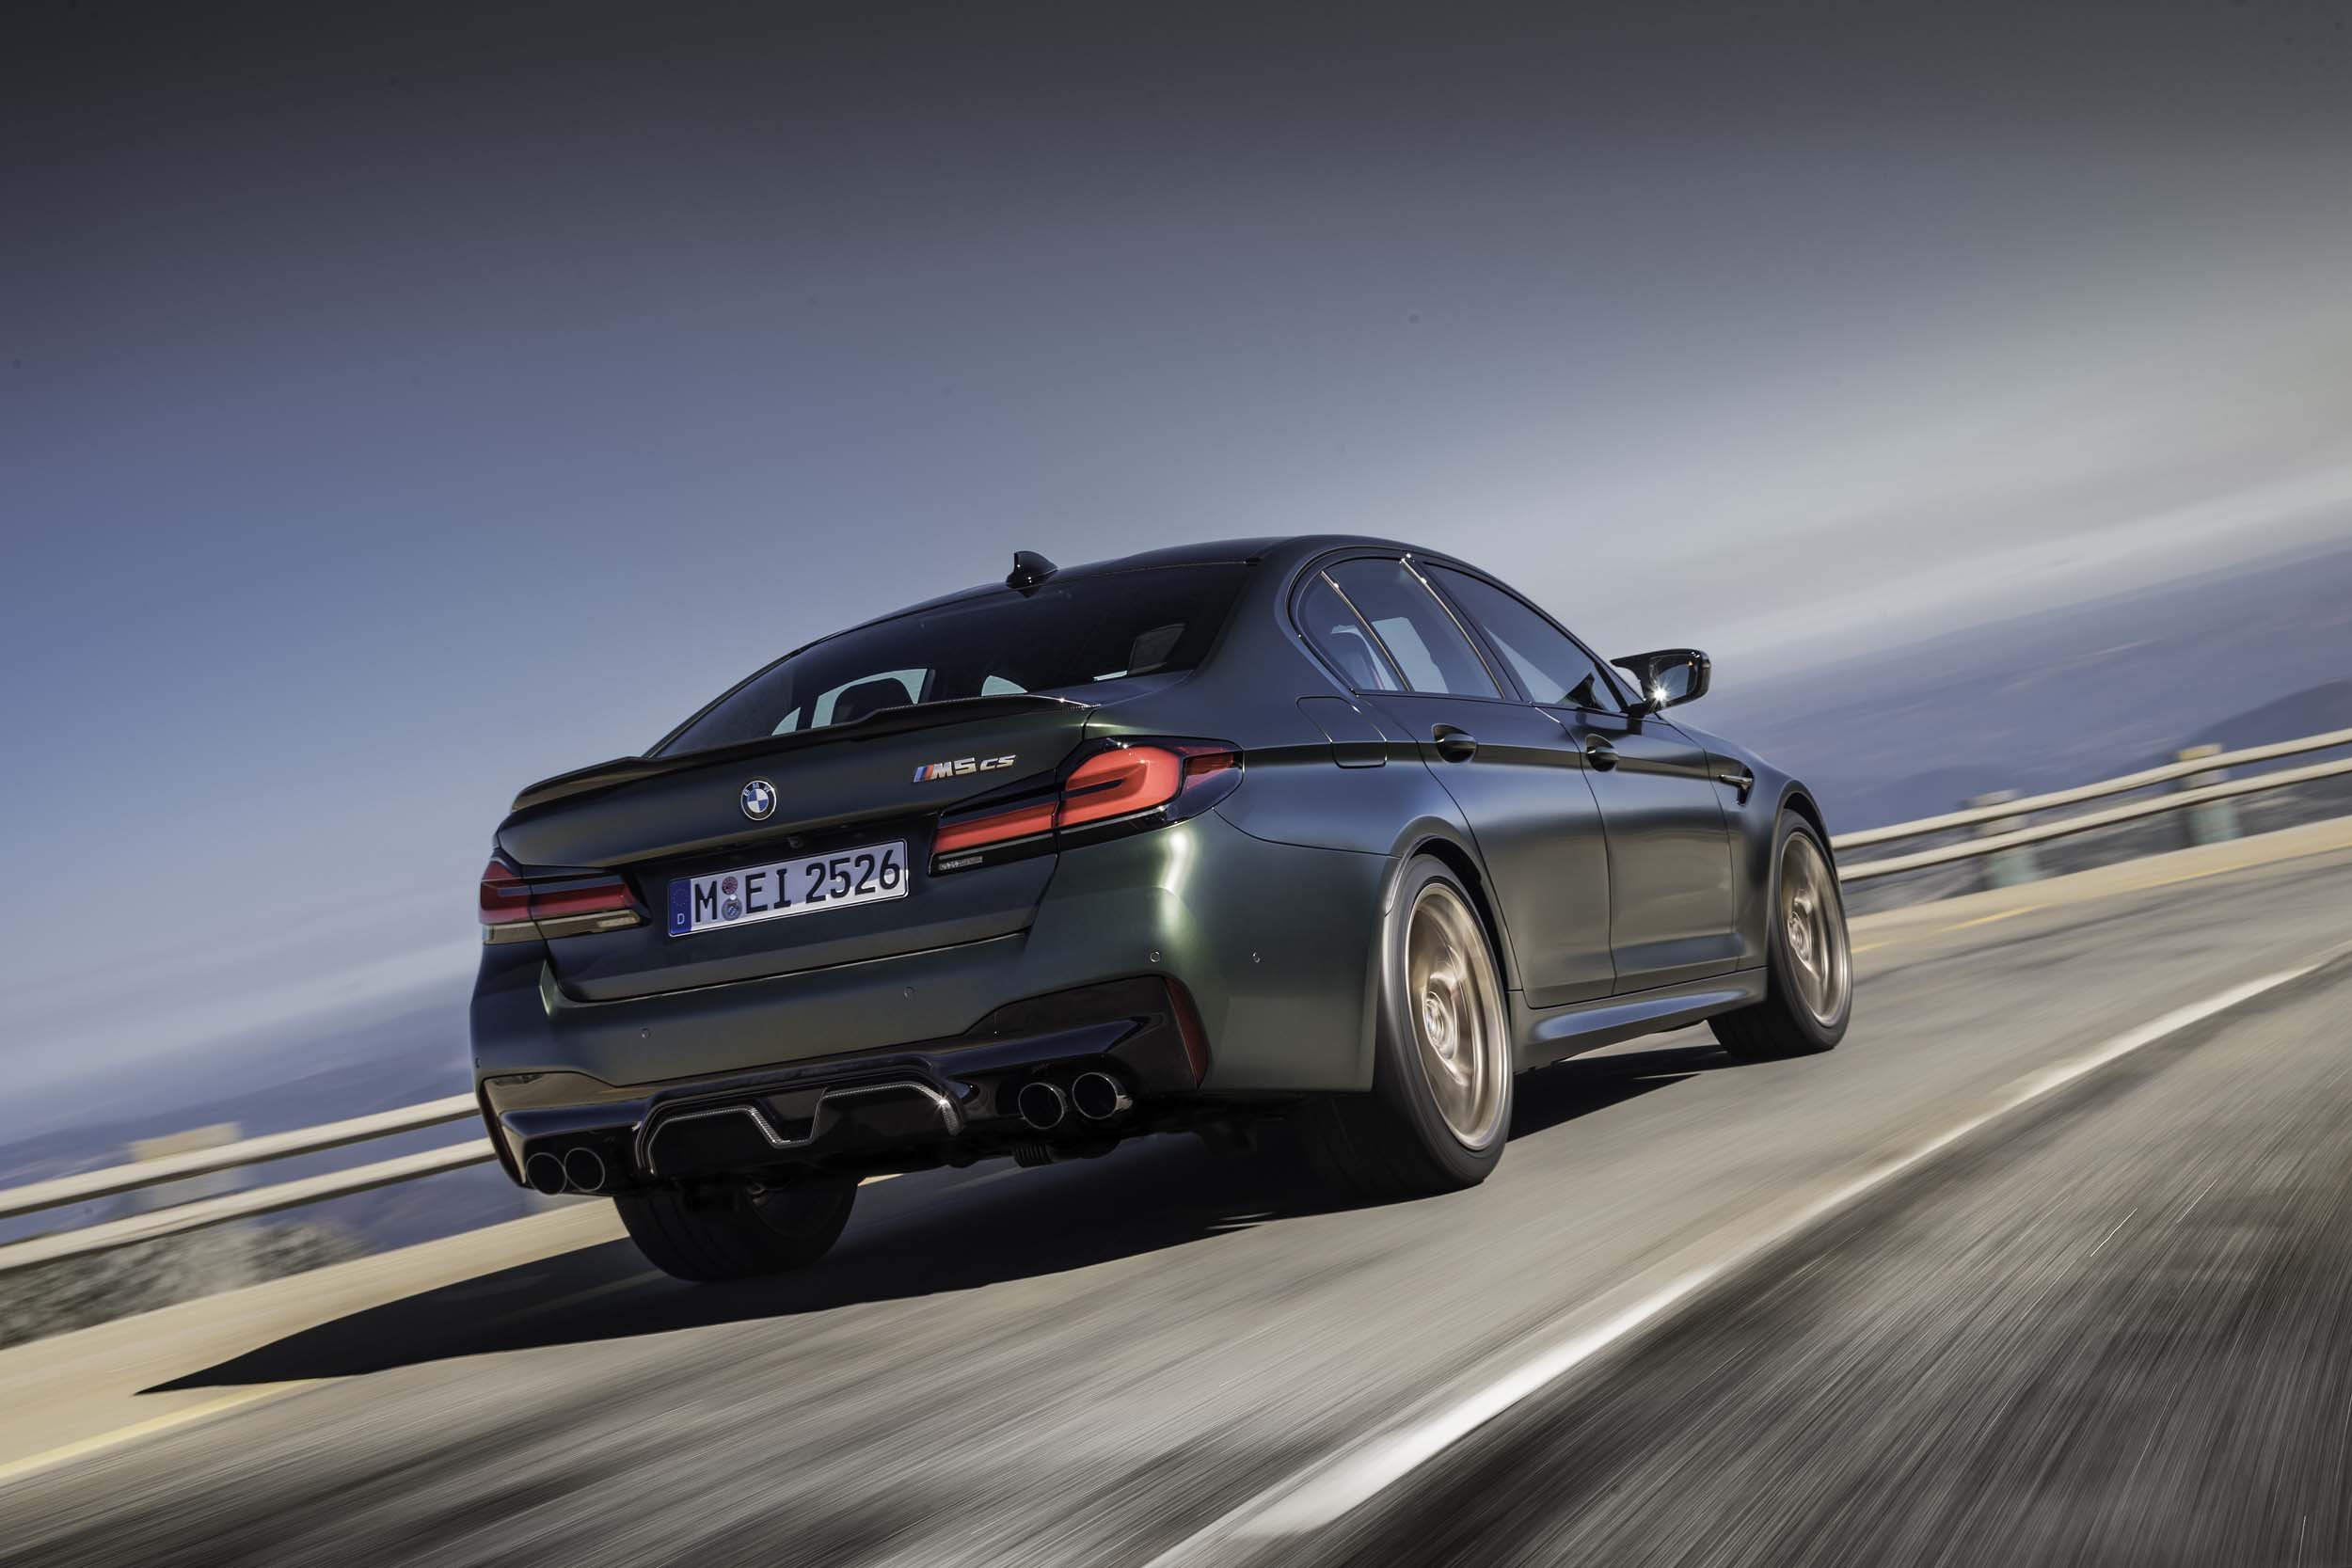 The New 2022 BMW M5 CS Sedan